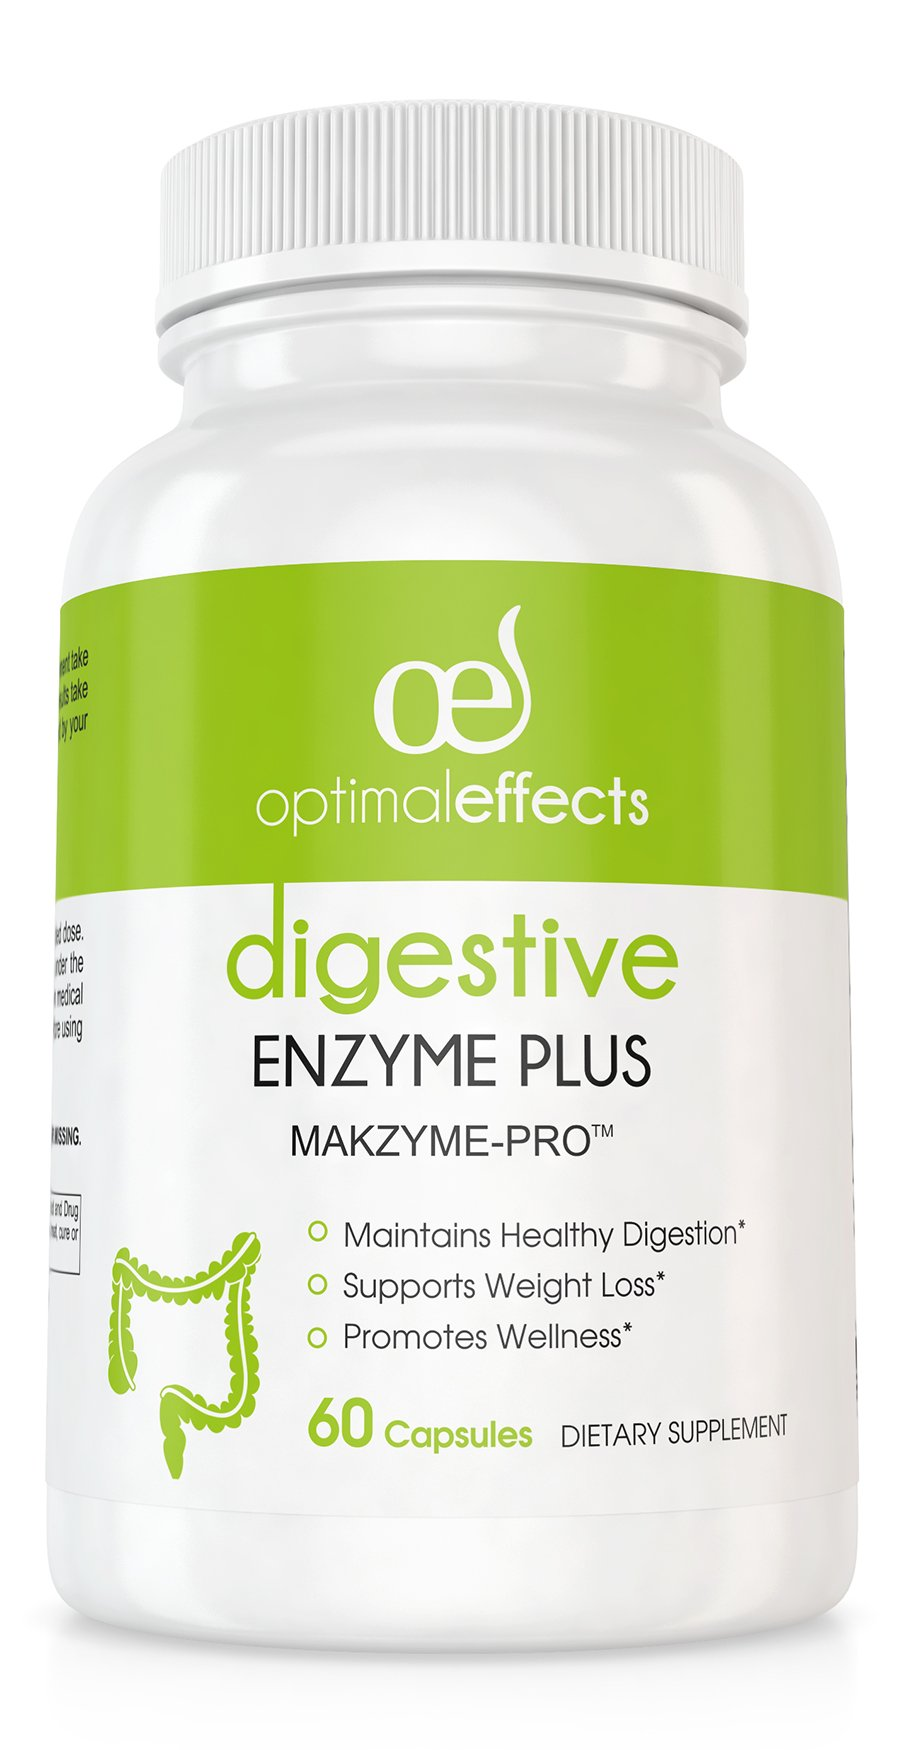 Digestive Enzymes by Optimal Effects - Improve Digestive Support, Nutrition Absorption, and Diminish Bodily Discomfort. Powerful Enzyme Formula in Natural Supplement Form - 60 Veggie Capsules